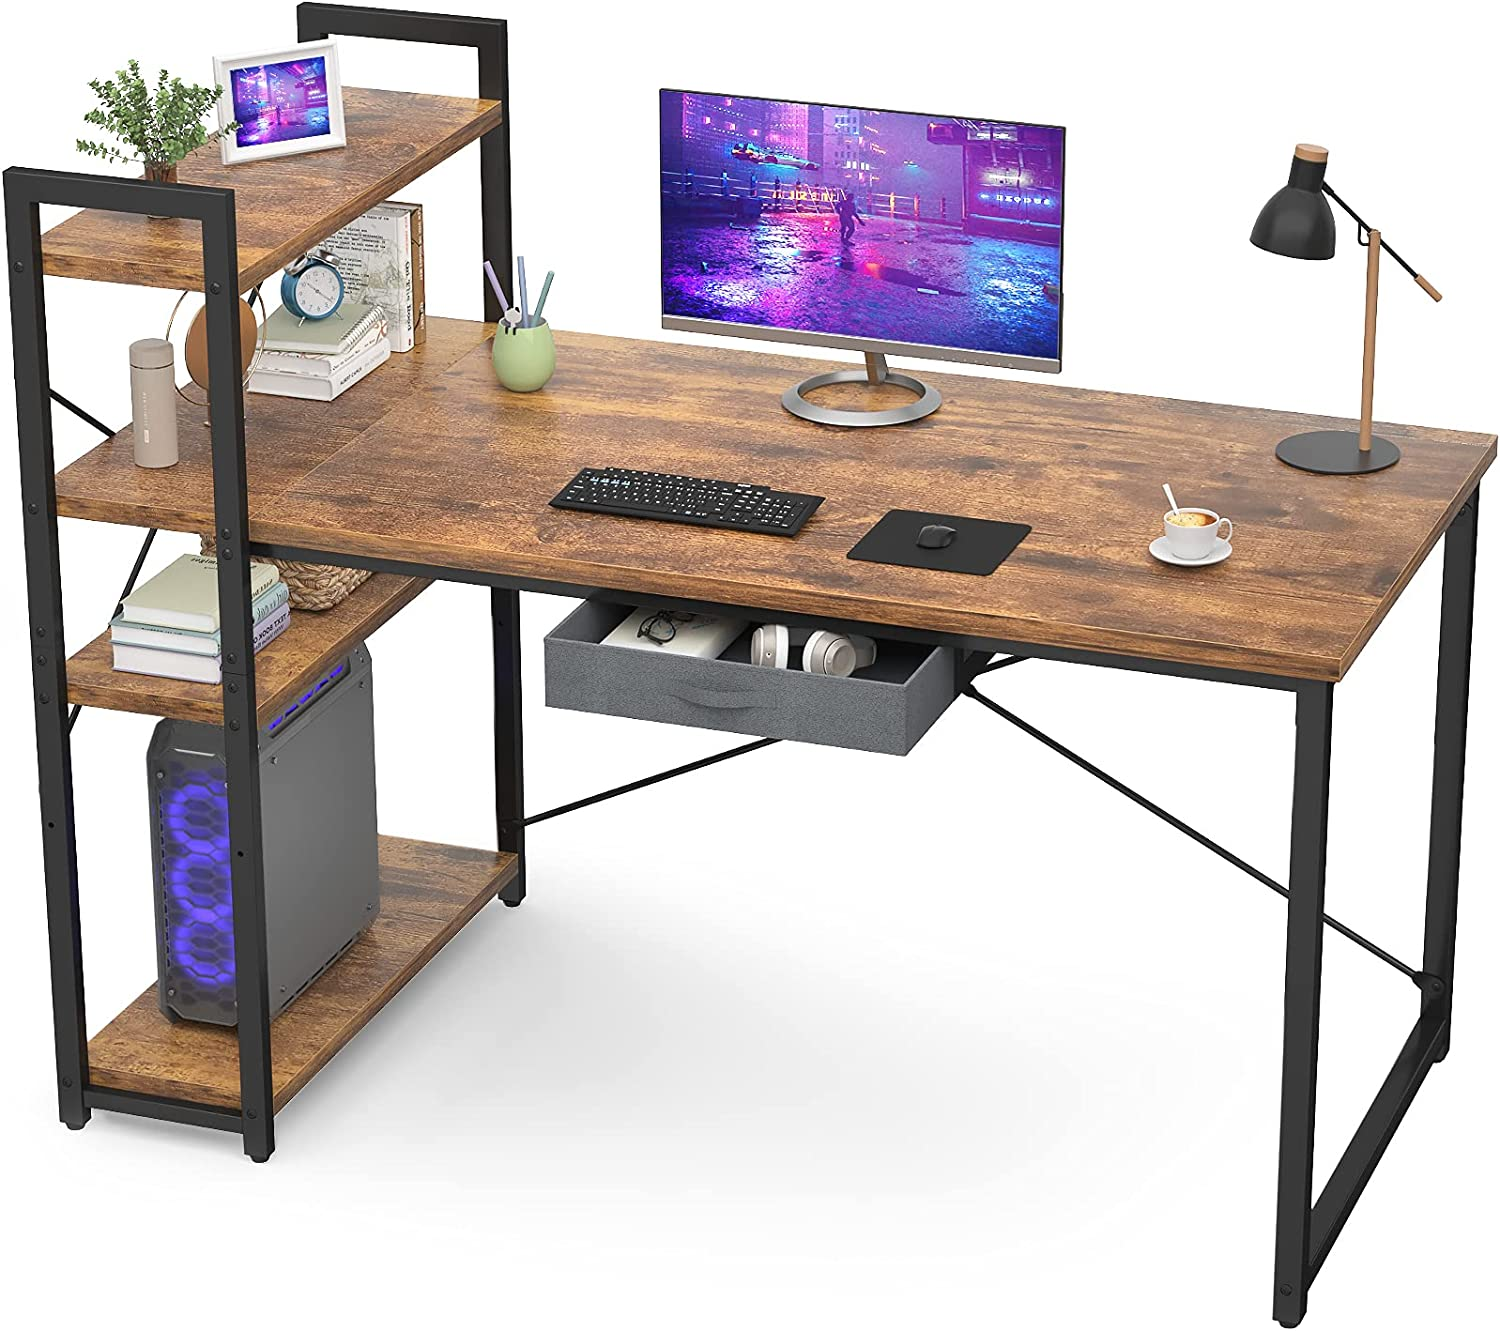 Armocity Computer Desk with Storage Shelves 47 Inch Desk with Storage Drawers 2 Person Desk with Reversible Bookshelves Industrial Study Writing Table for Home Office Workstation Small Space, Vintage